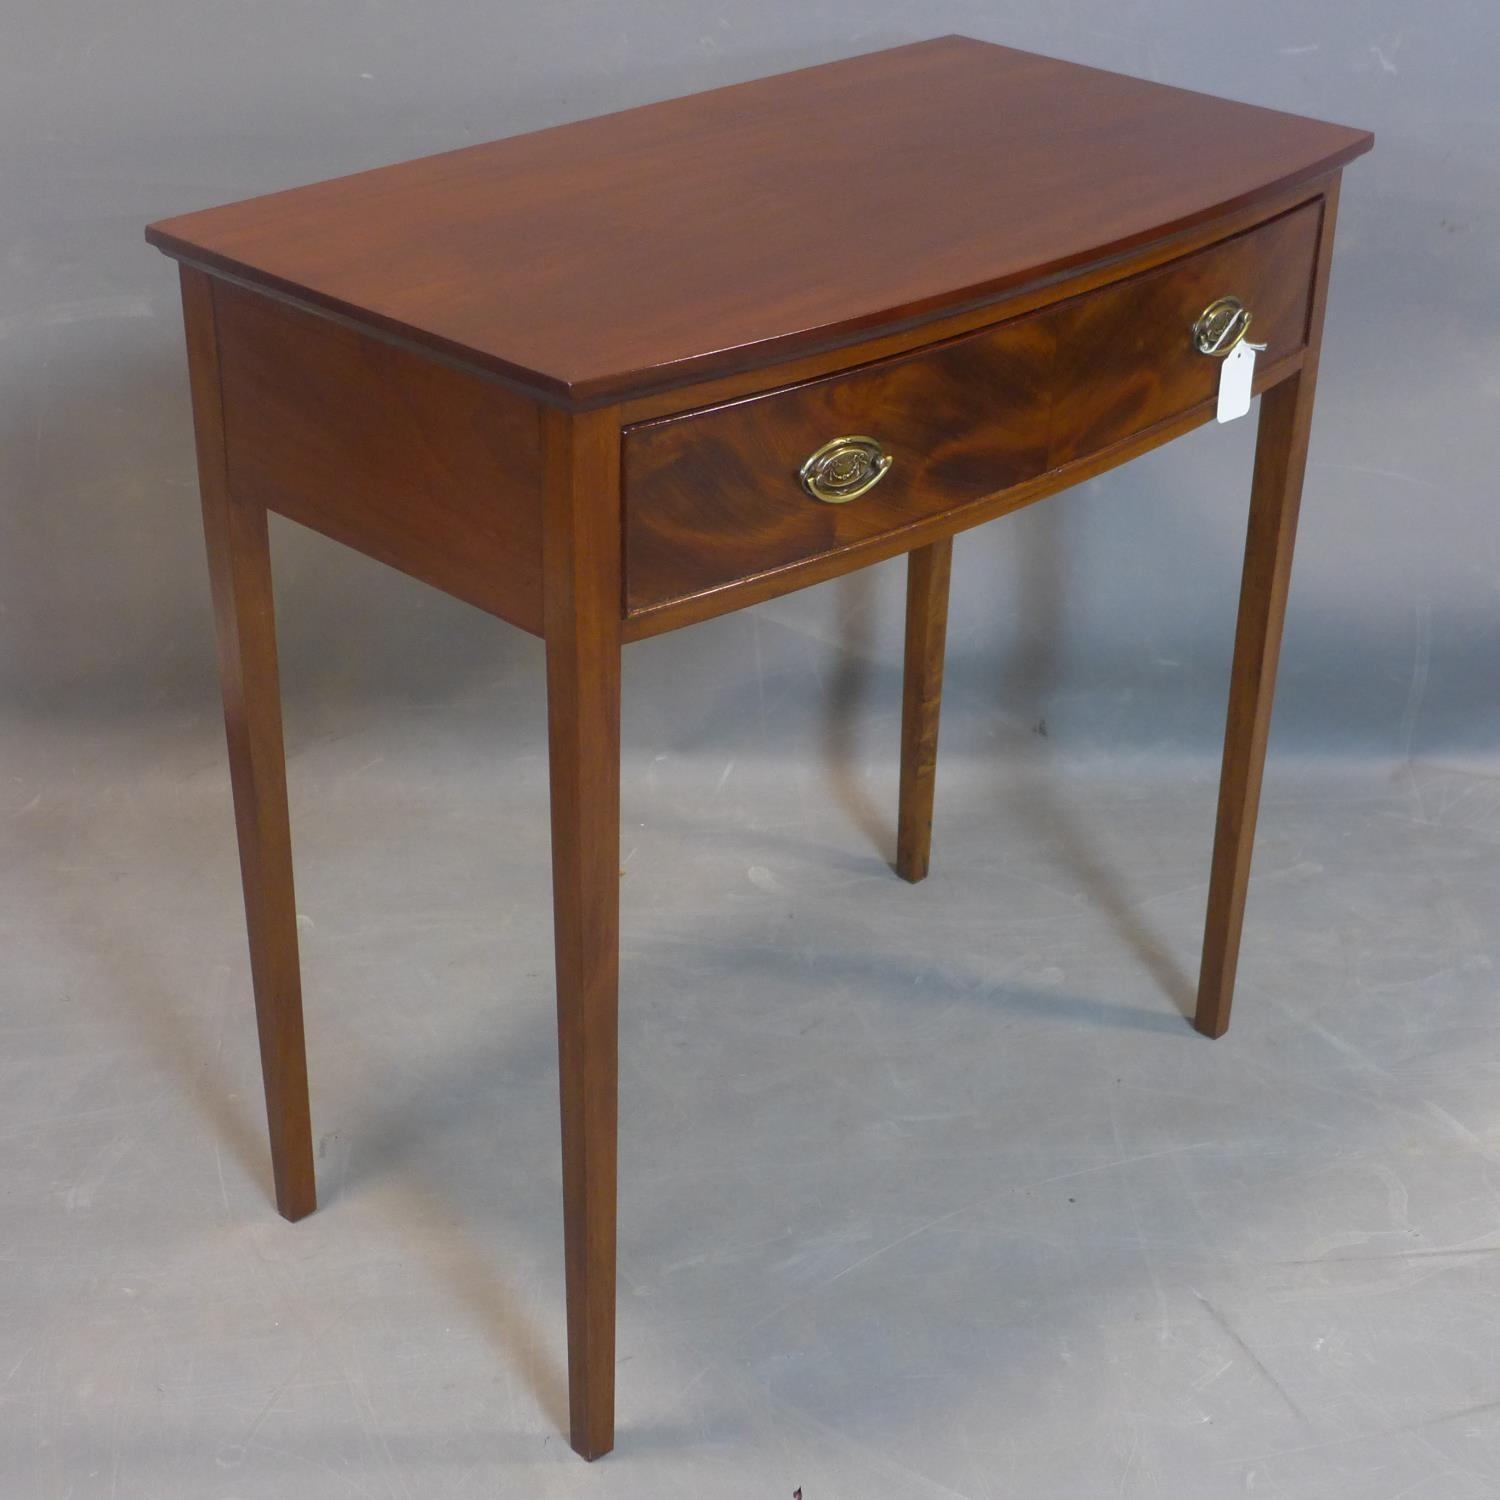 Lot 118 - A 19th century mahogany bow fronted side table, with single drawer, on square tapered legs, H.76 W.